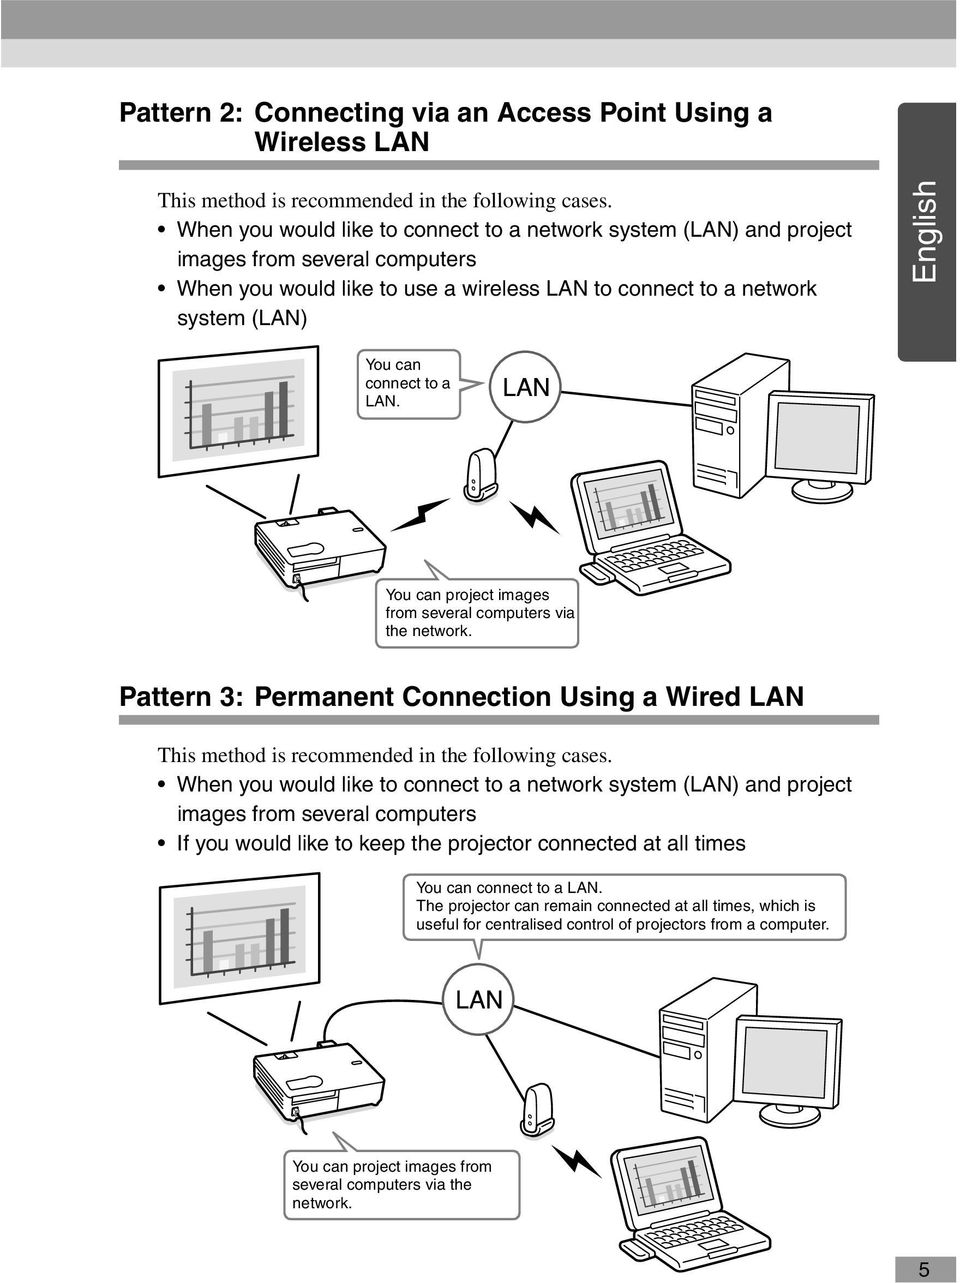 connect to a LAN. You can project images from several computers via the network. Pattern 3: Permanent Connection Using a Wired LAN This method is recommended in the following cases.